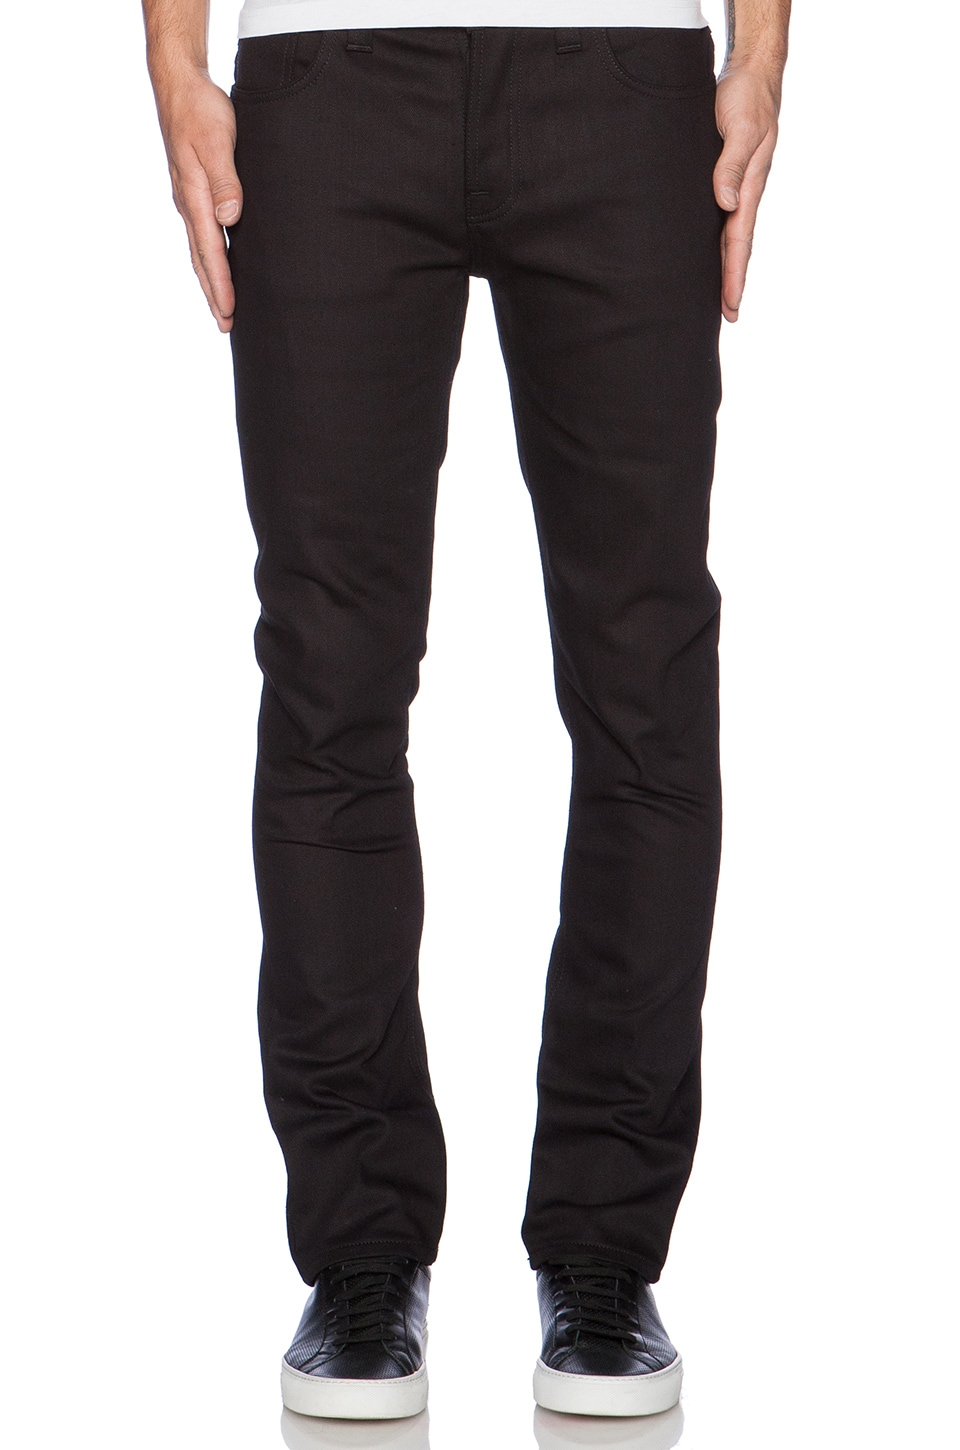 Nudie Jeans Grim Tim in Org. Dry Cold Black